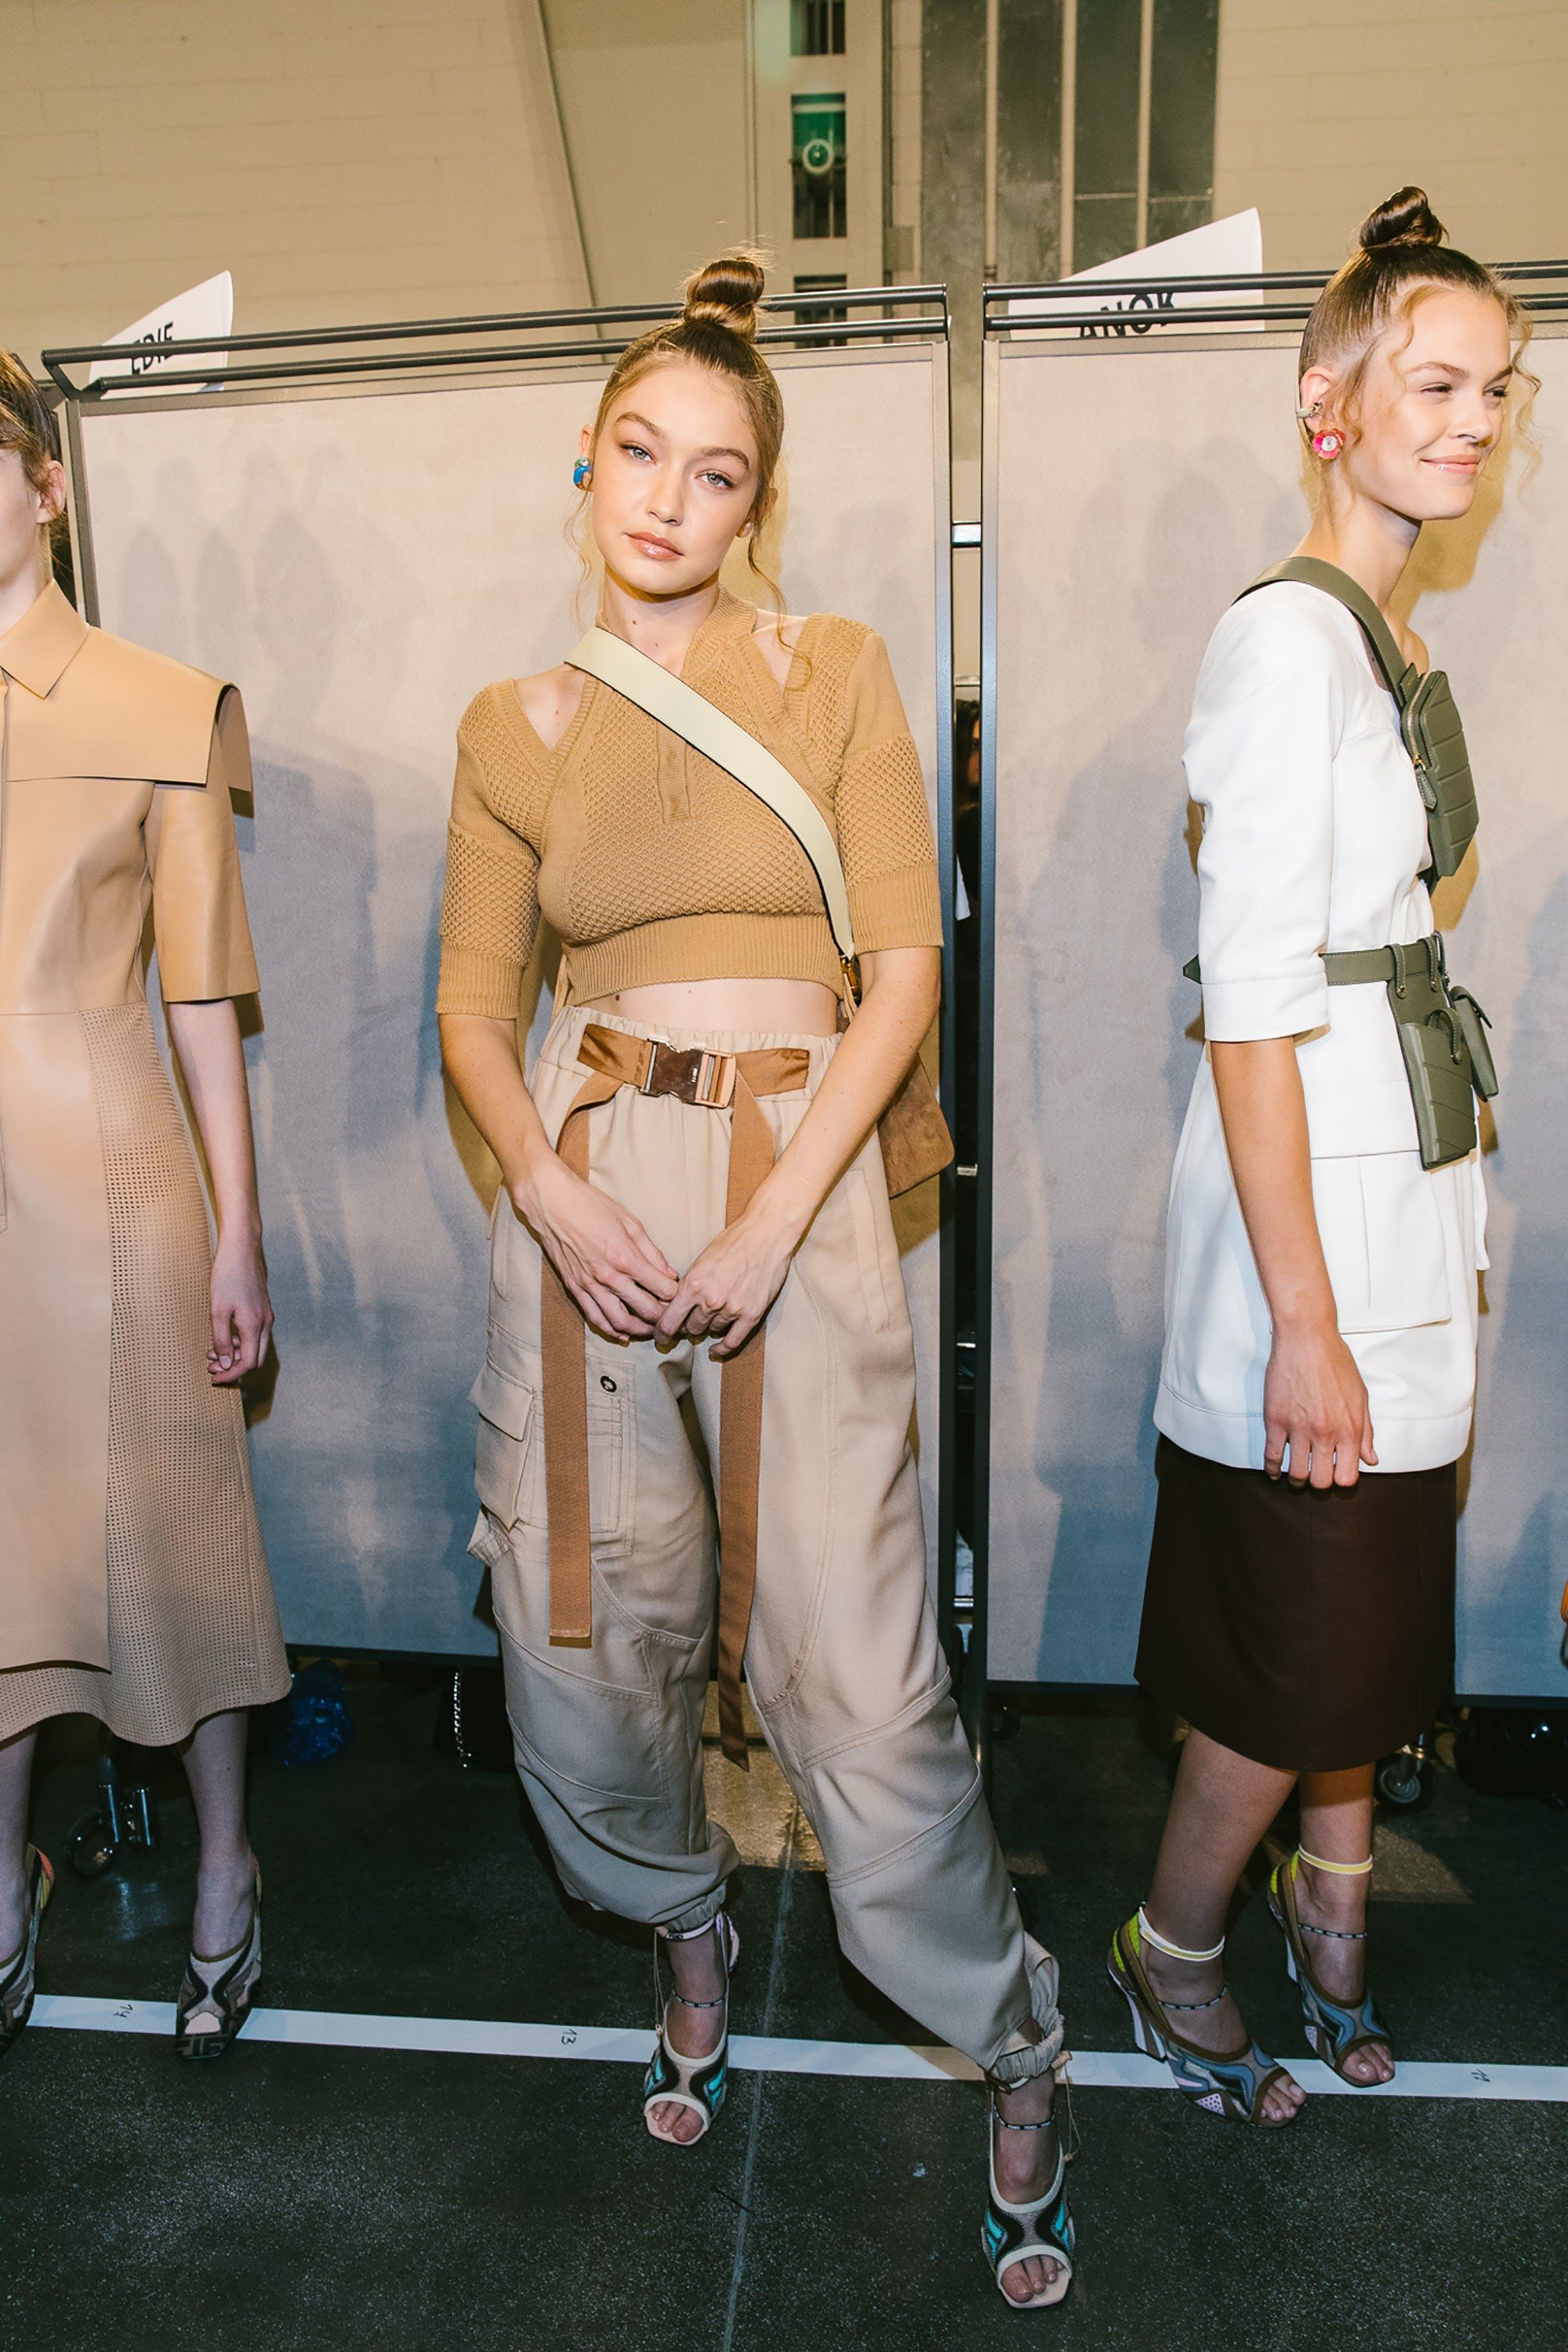 The Best Backstage Photos From Milan Fashion Week Spring 2019 ... 089c5354d3c8a